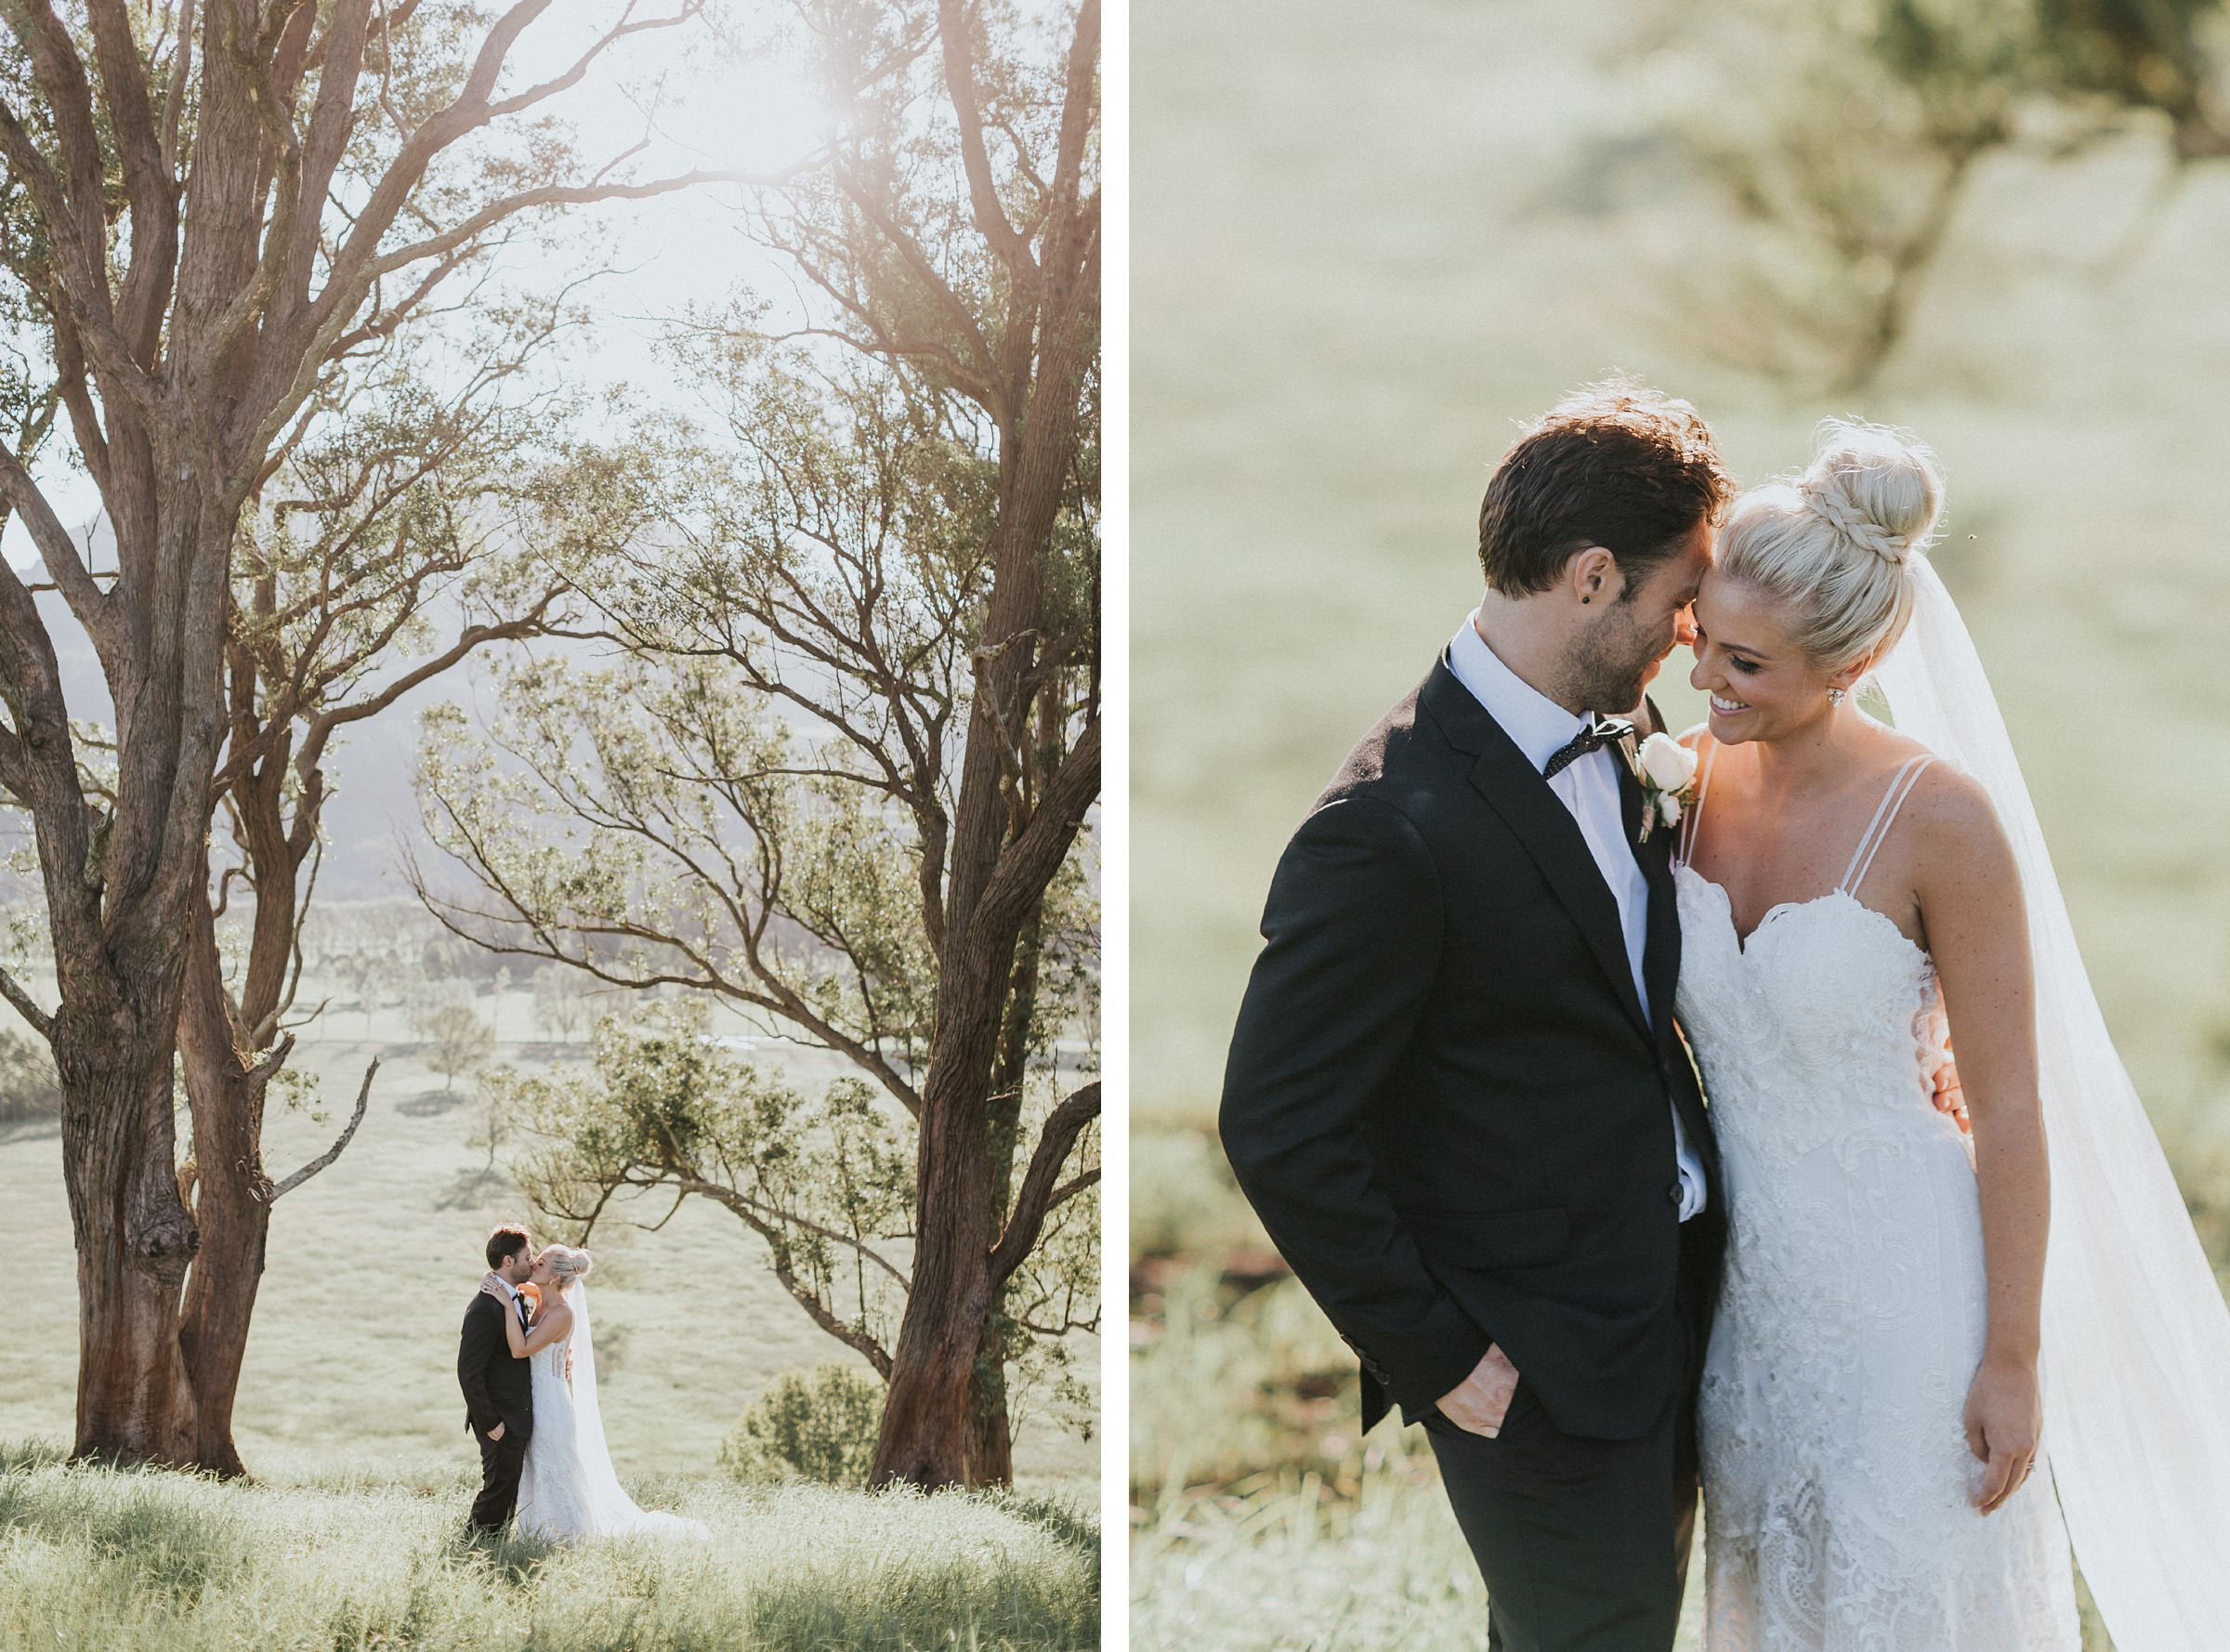 golden hour wedding portraits at melross farm in the kangaroo valley